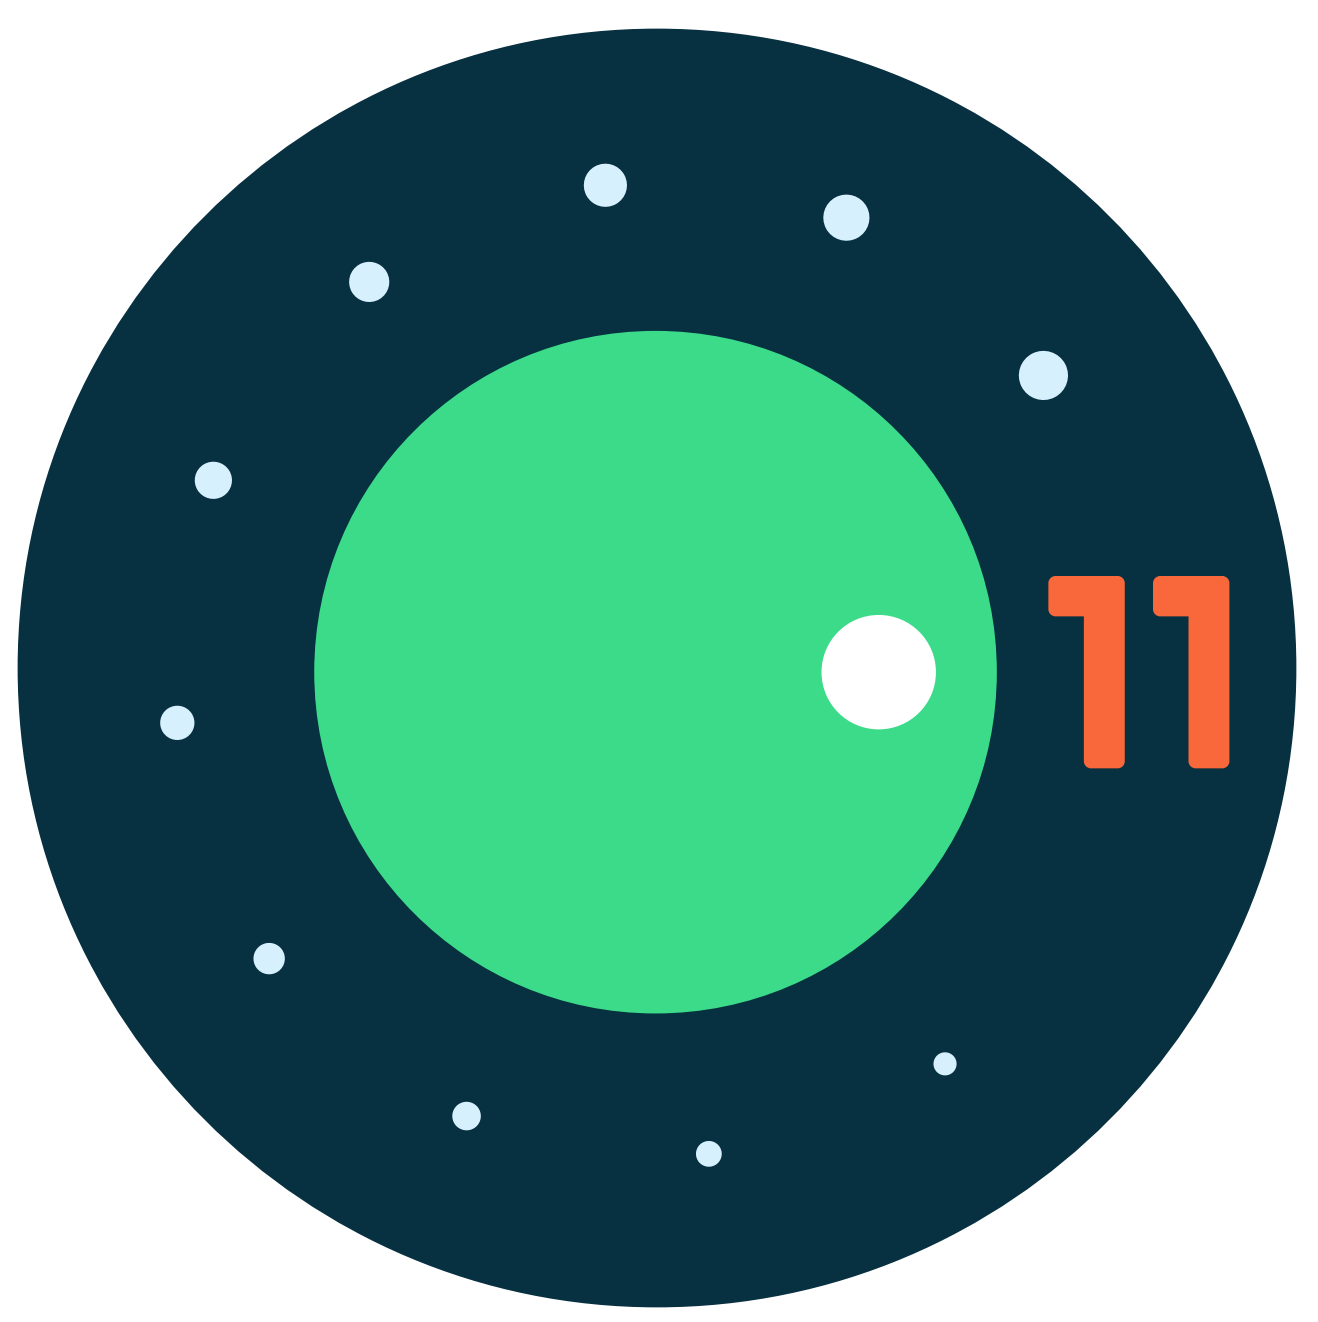 Android 11 Dial logo